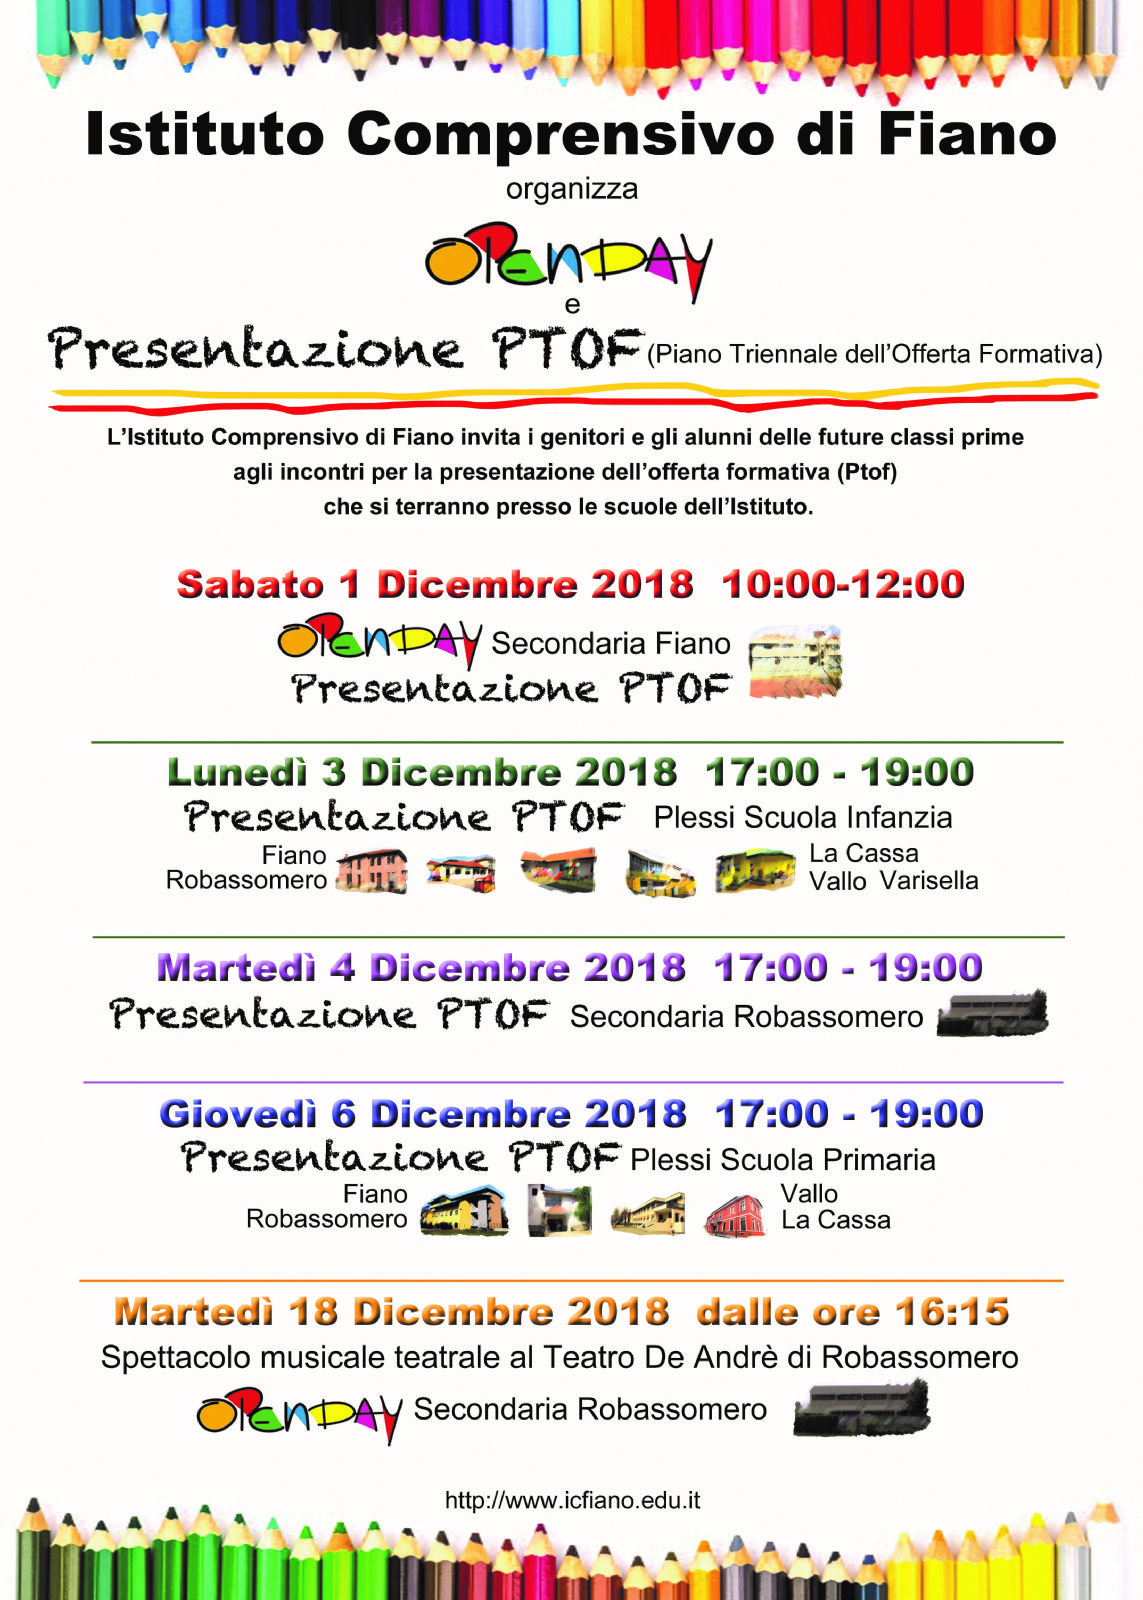 OPEN DAY ISTITUTO COMPRENSIVO FIANO